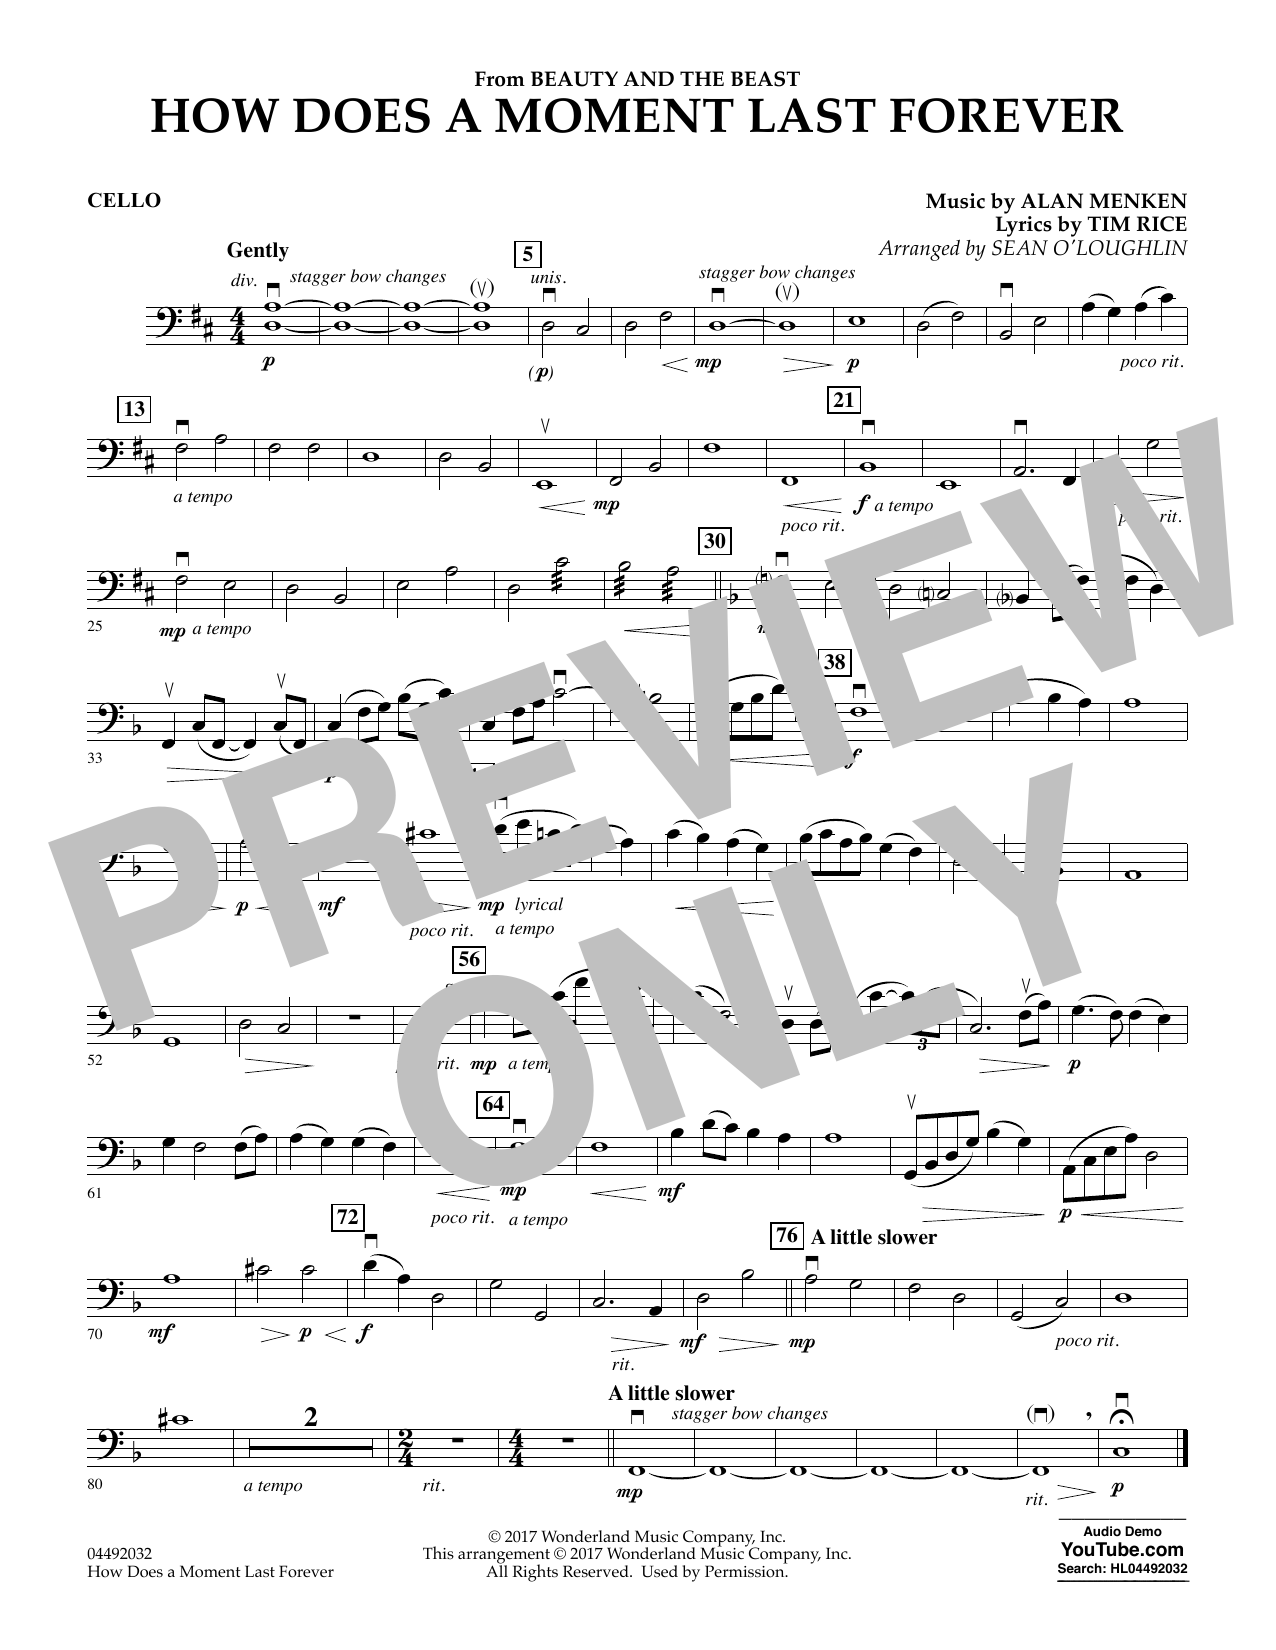 Sean O'Loughlin How Does a Moment Last Forever (from Beauty and the Beast) - Cello sheet music notes and chords. Download Printable PDF.